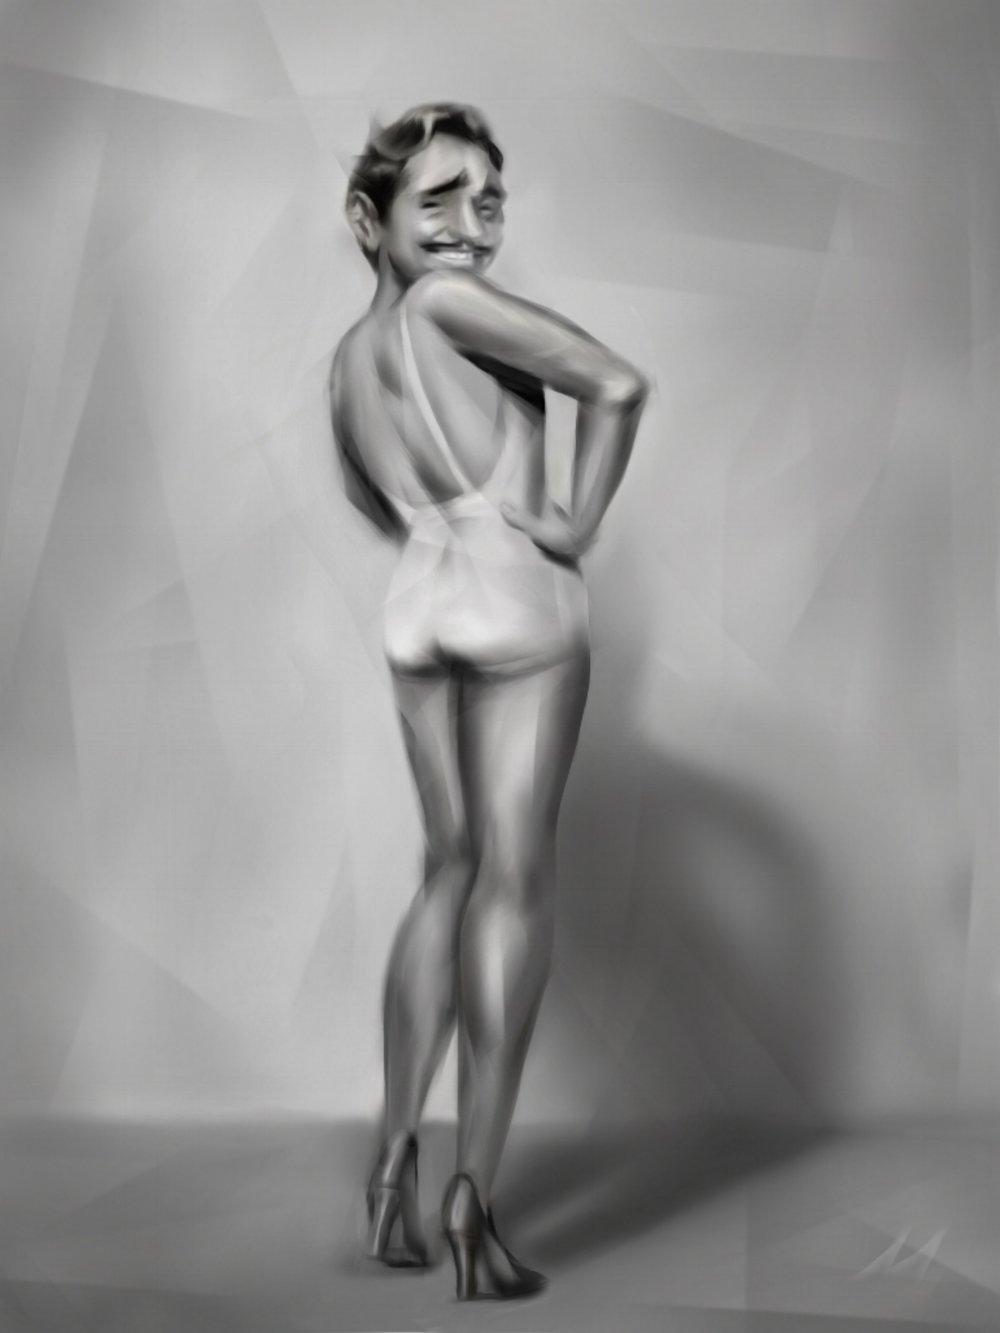 """Clark Grable""  Betty Grable + Clark Gable = Clark Grable.  Riffing on the gorgeous WWII cheesecake shot of Betty 'Gams' Grable. #celebritymashup"